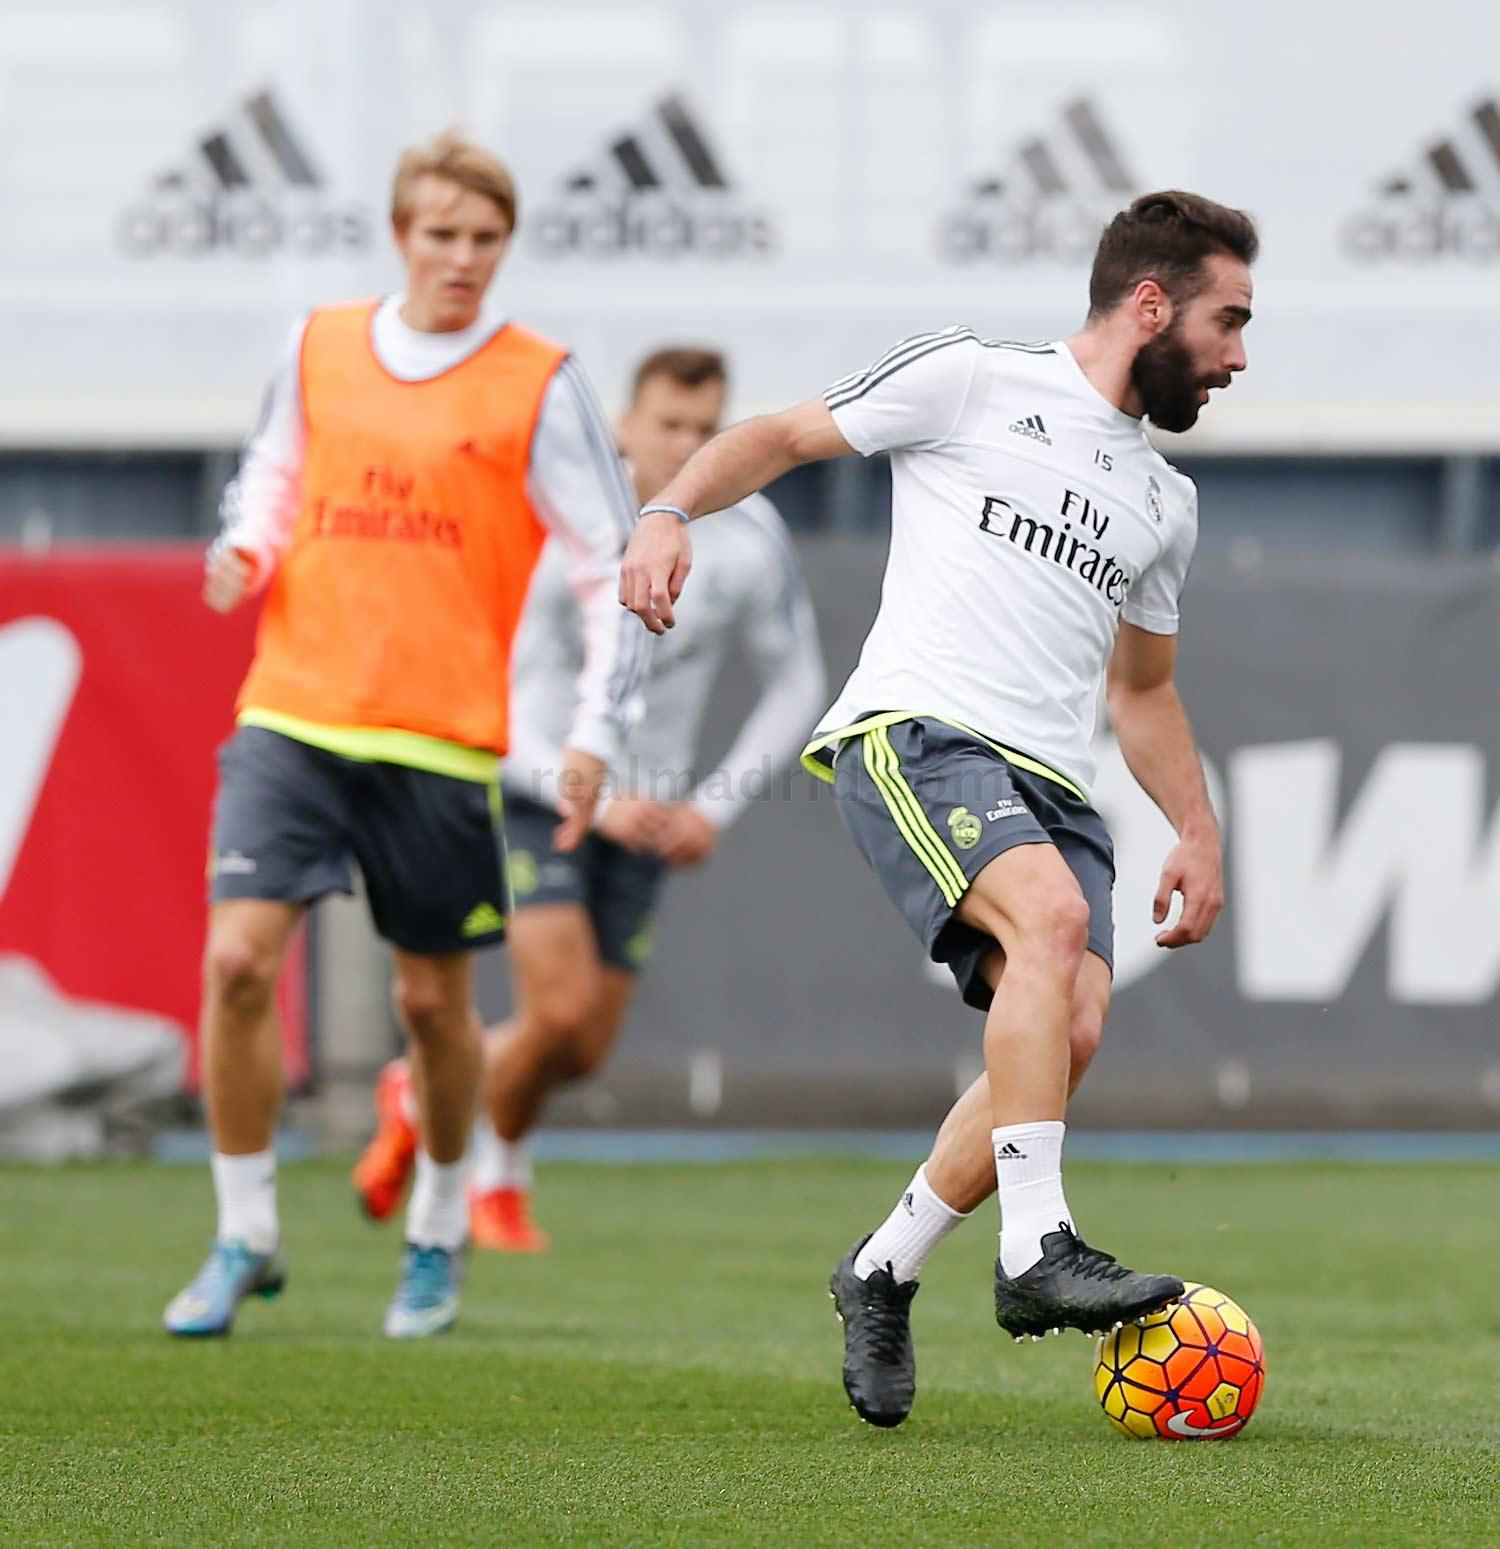 Real Madrid - Entrenamiento del Real Madrid - 05-11-2015